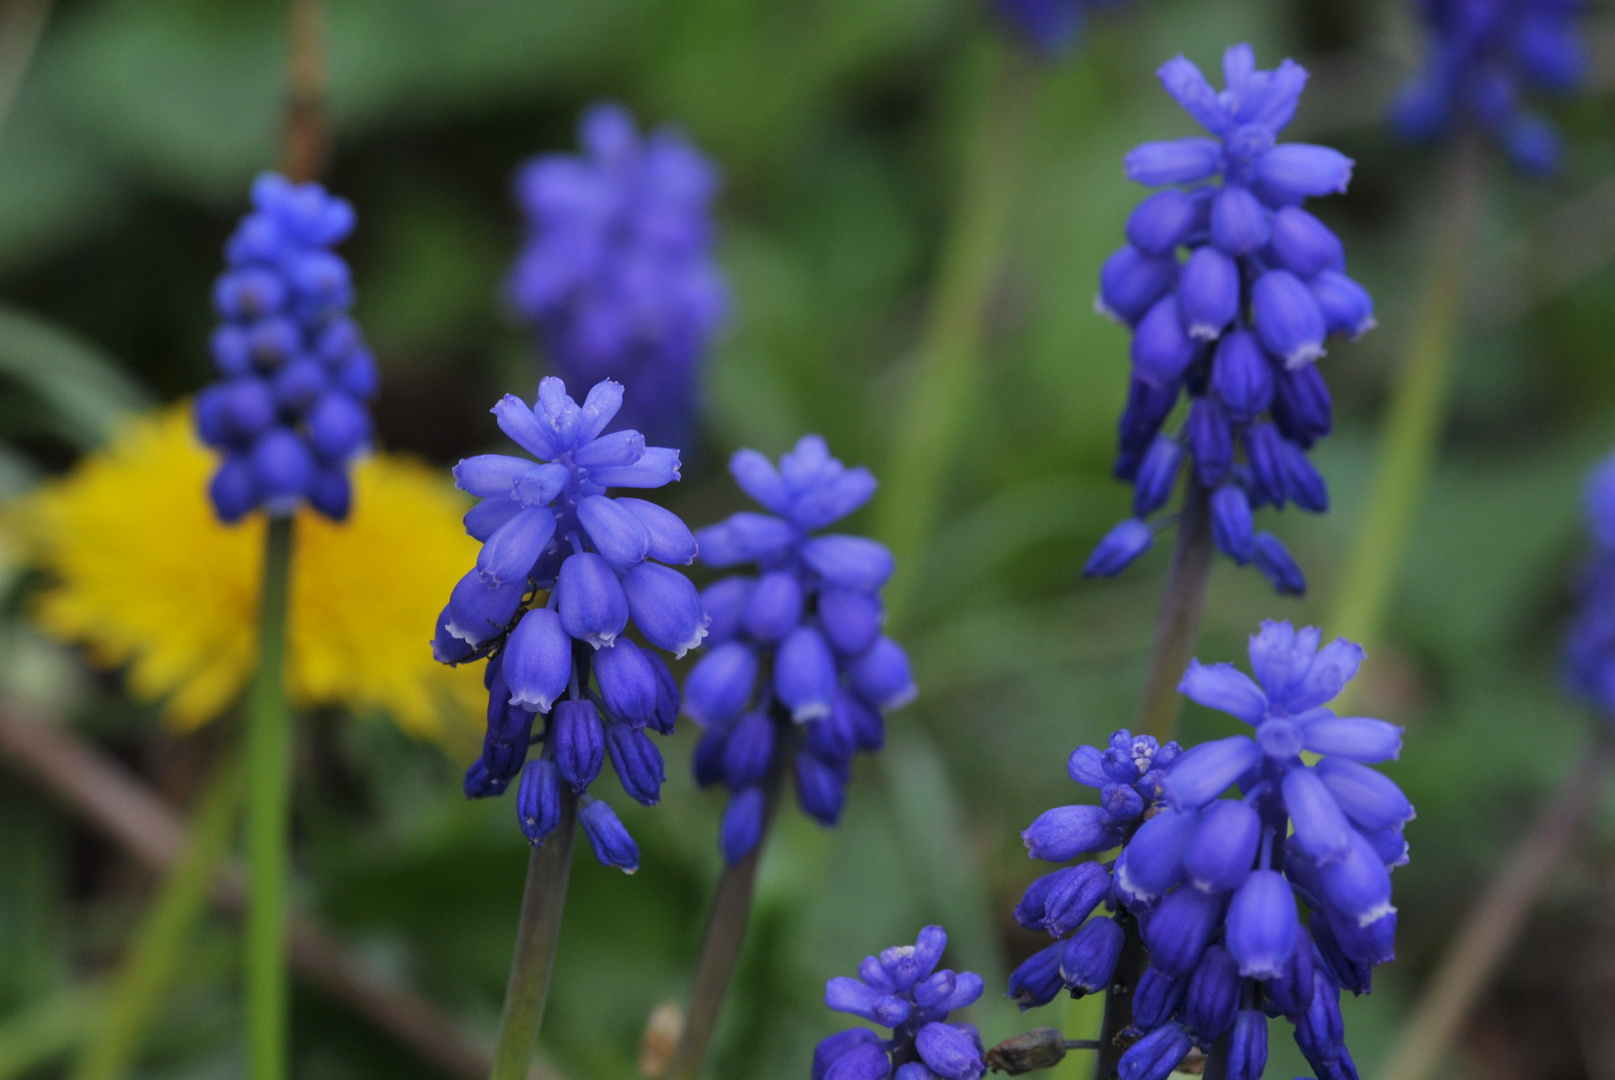 Traubenhyazinthen (Muscari)